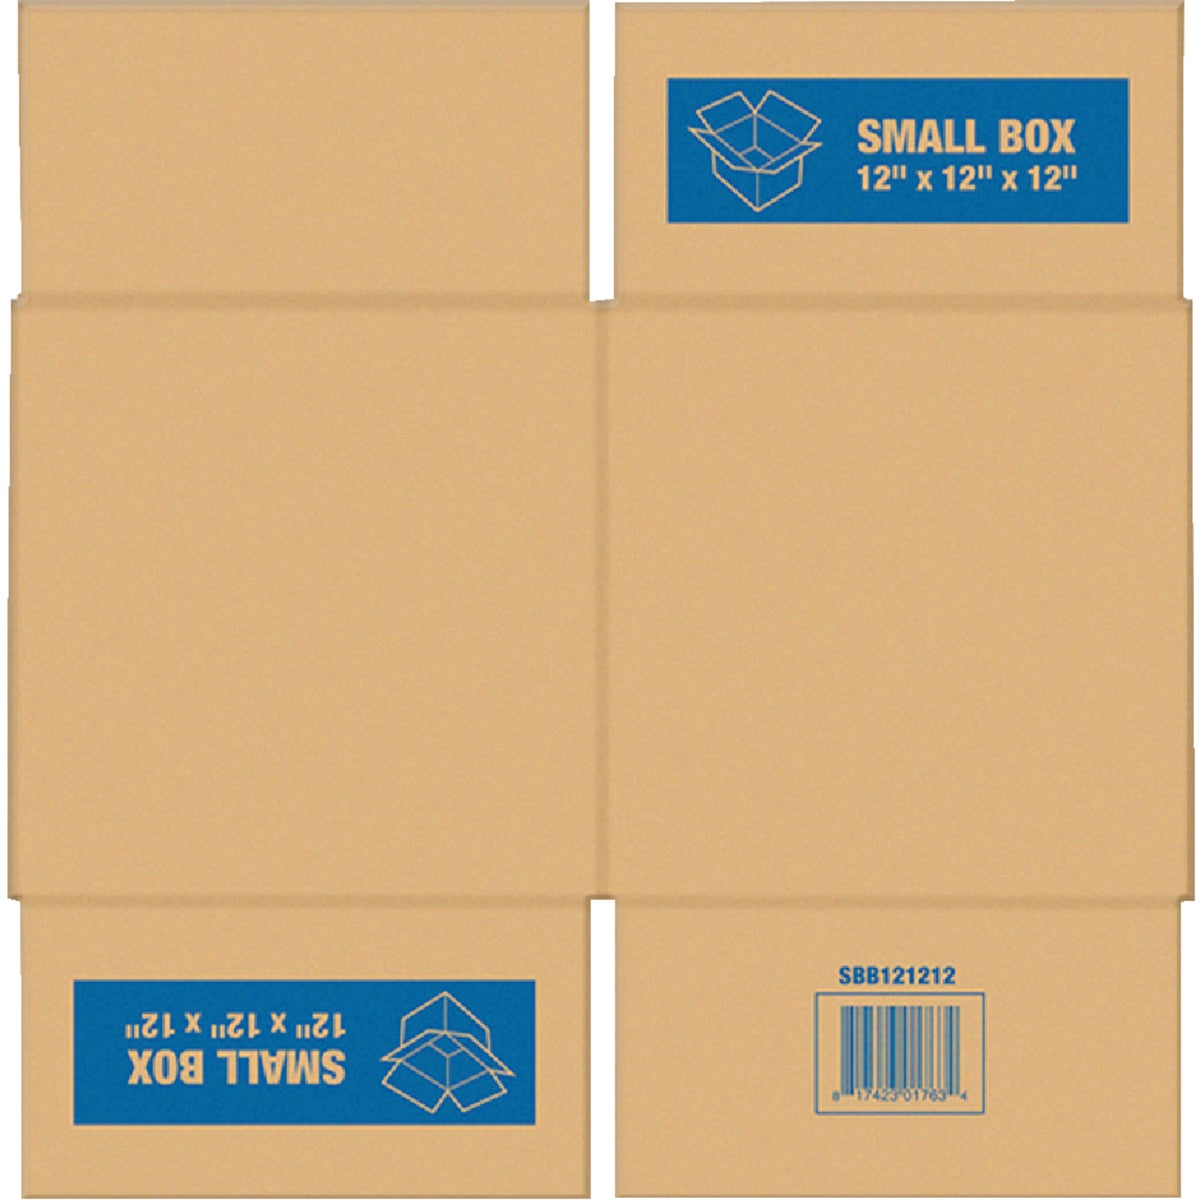 SMALL SHIPPING BOX - RBOXS by Broadway Industries